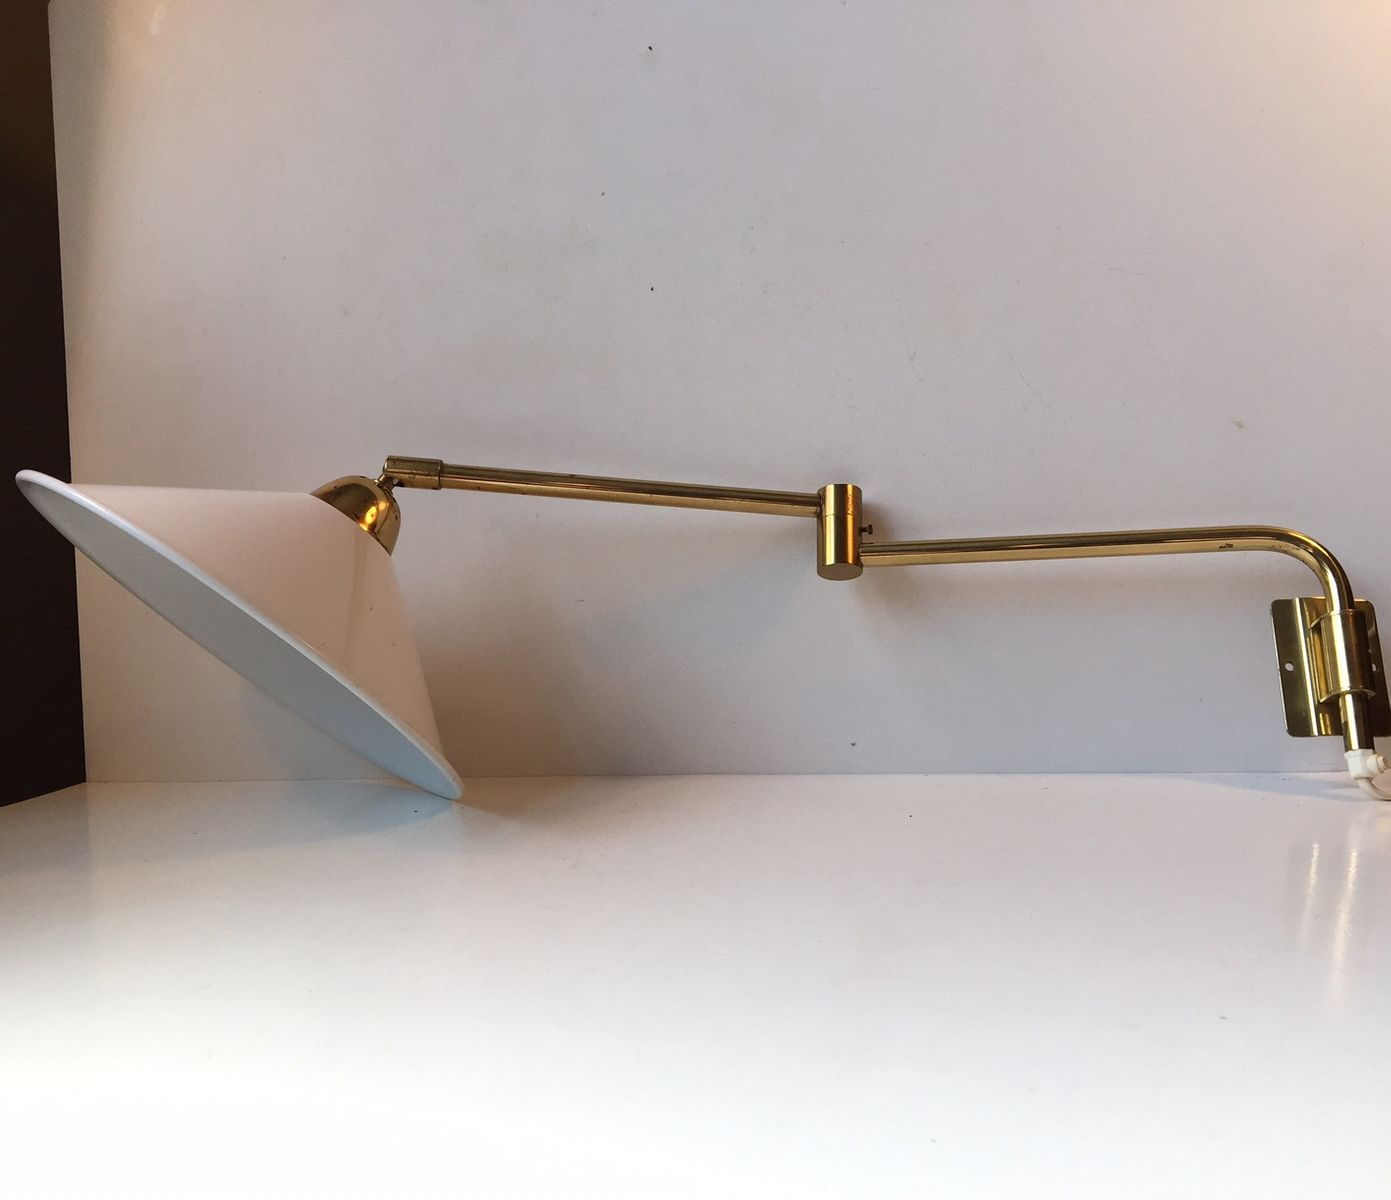 Wall Mounted Articulated Lamp : Mid-Century Danish Articulated Wall Lamp by Bent Nordsted for LB, 1960s for sale at Pamono